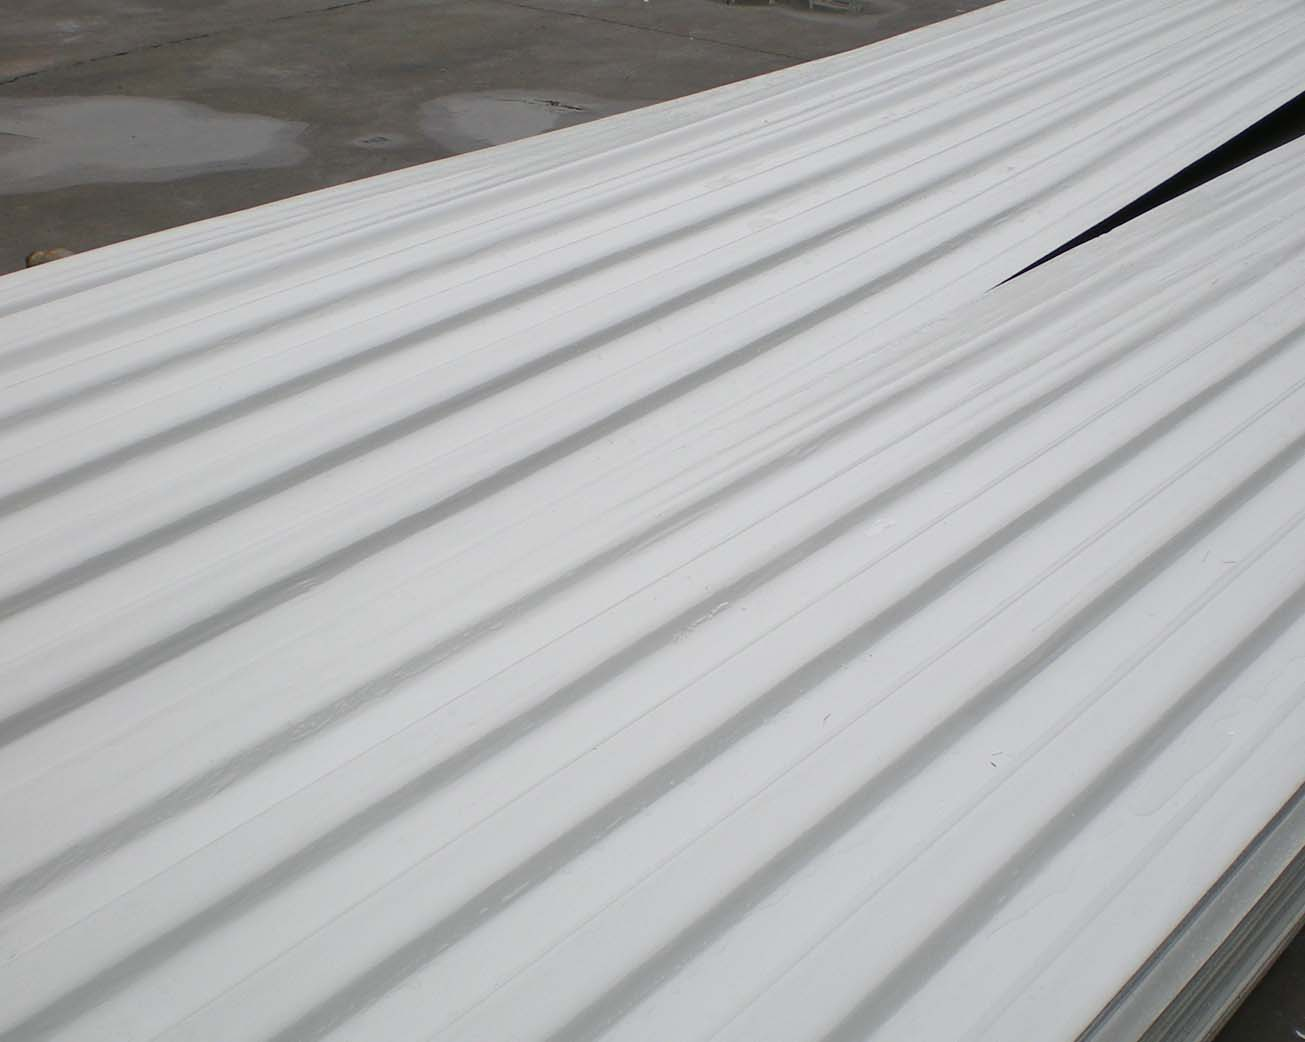 Fiberglass Reinforced plastic Panels For Cooling tower